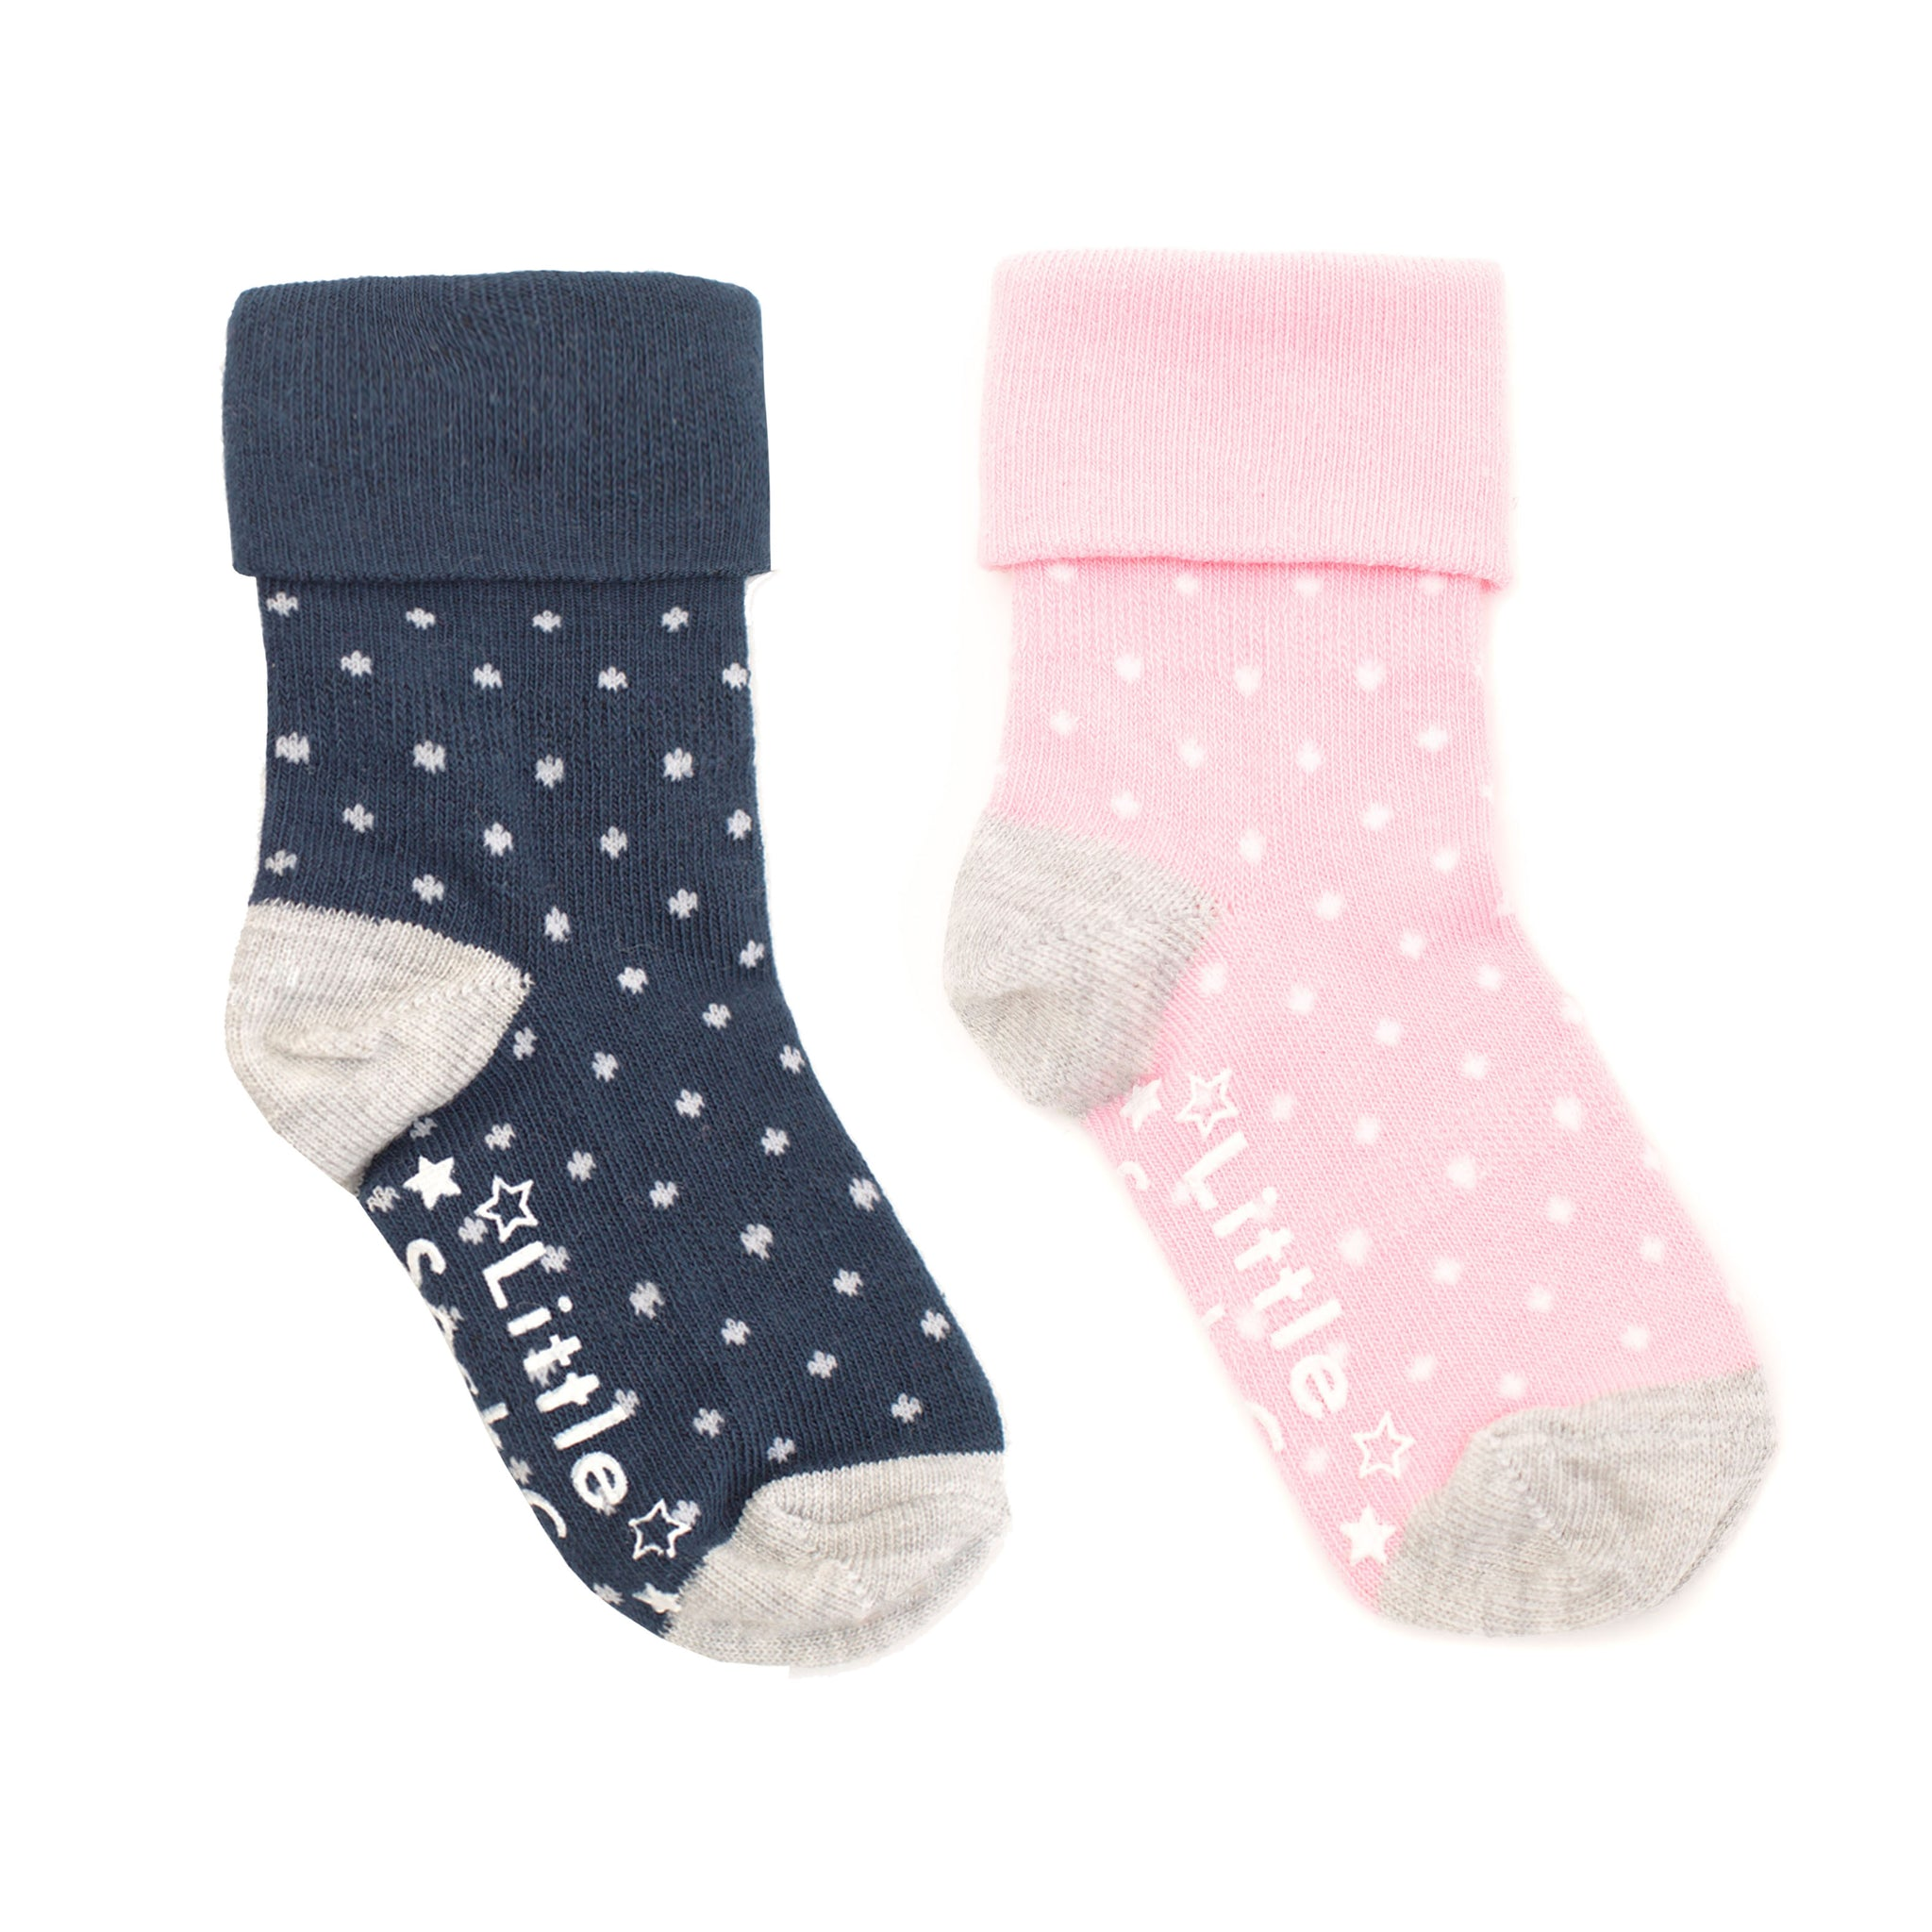 Non-Slip Stay on Socks - 2 Pack in Candy & Navy